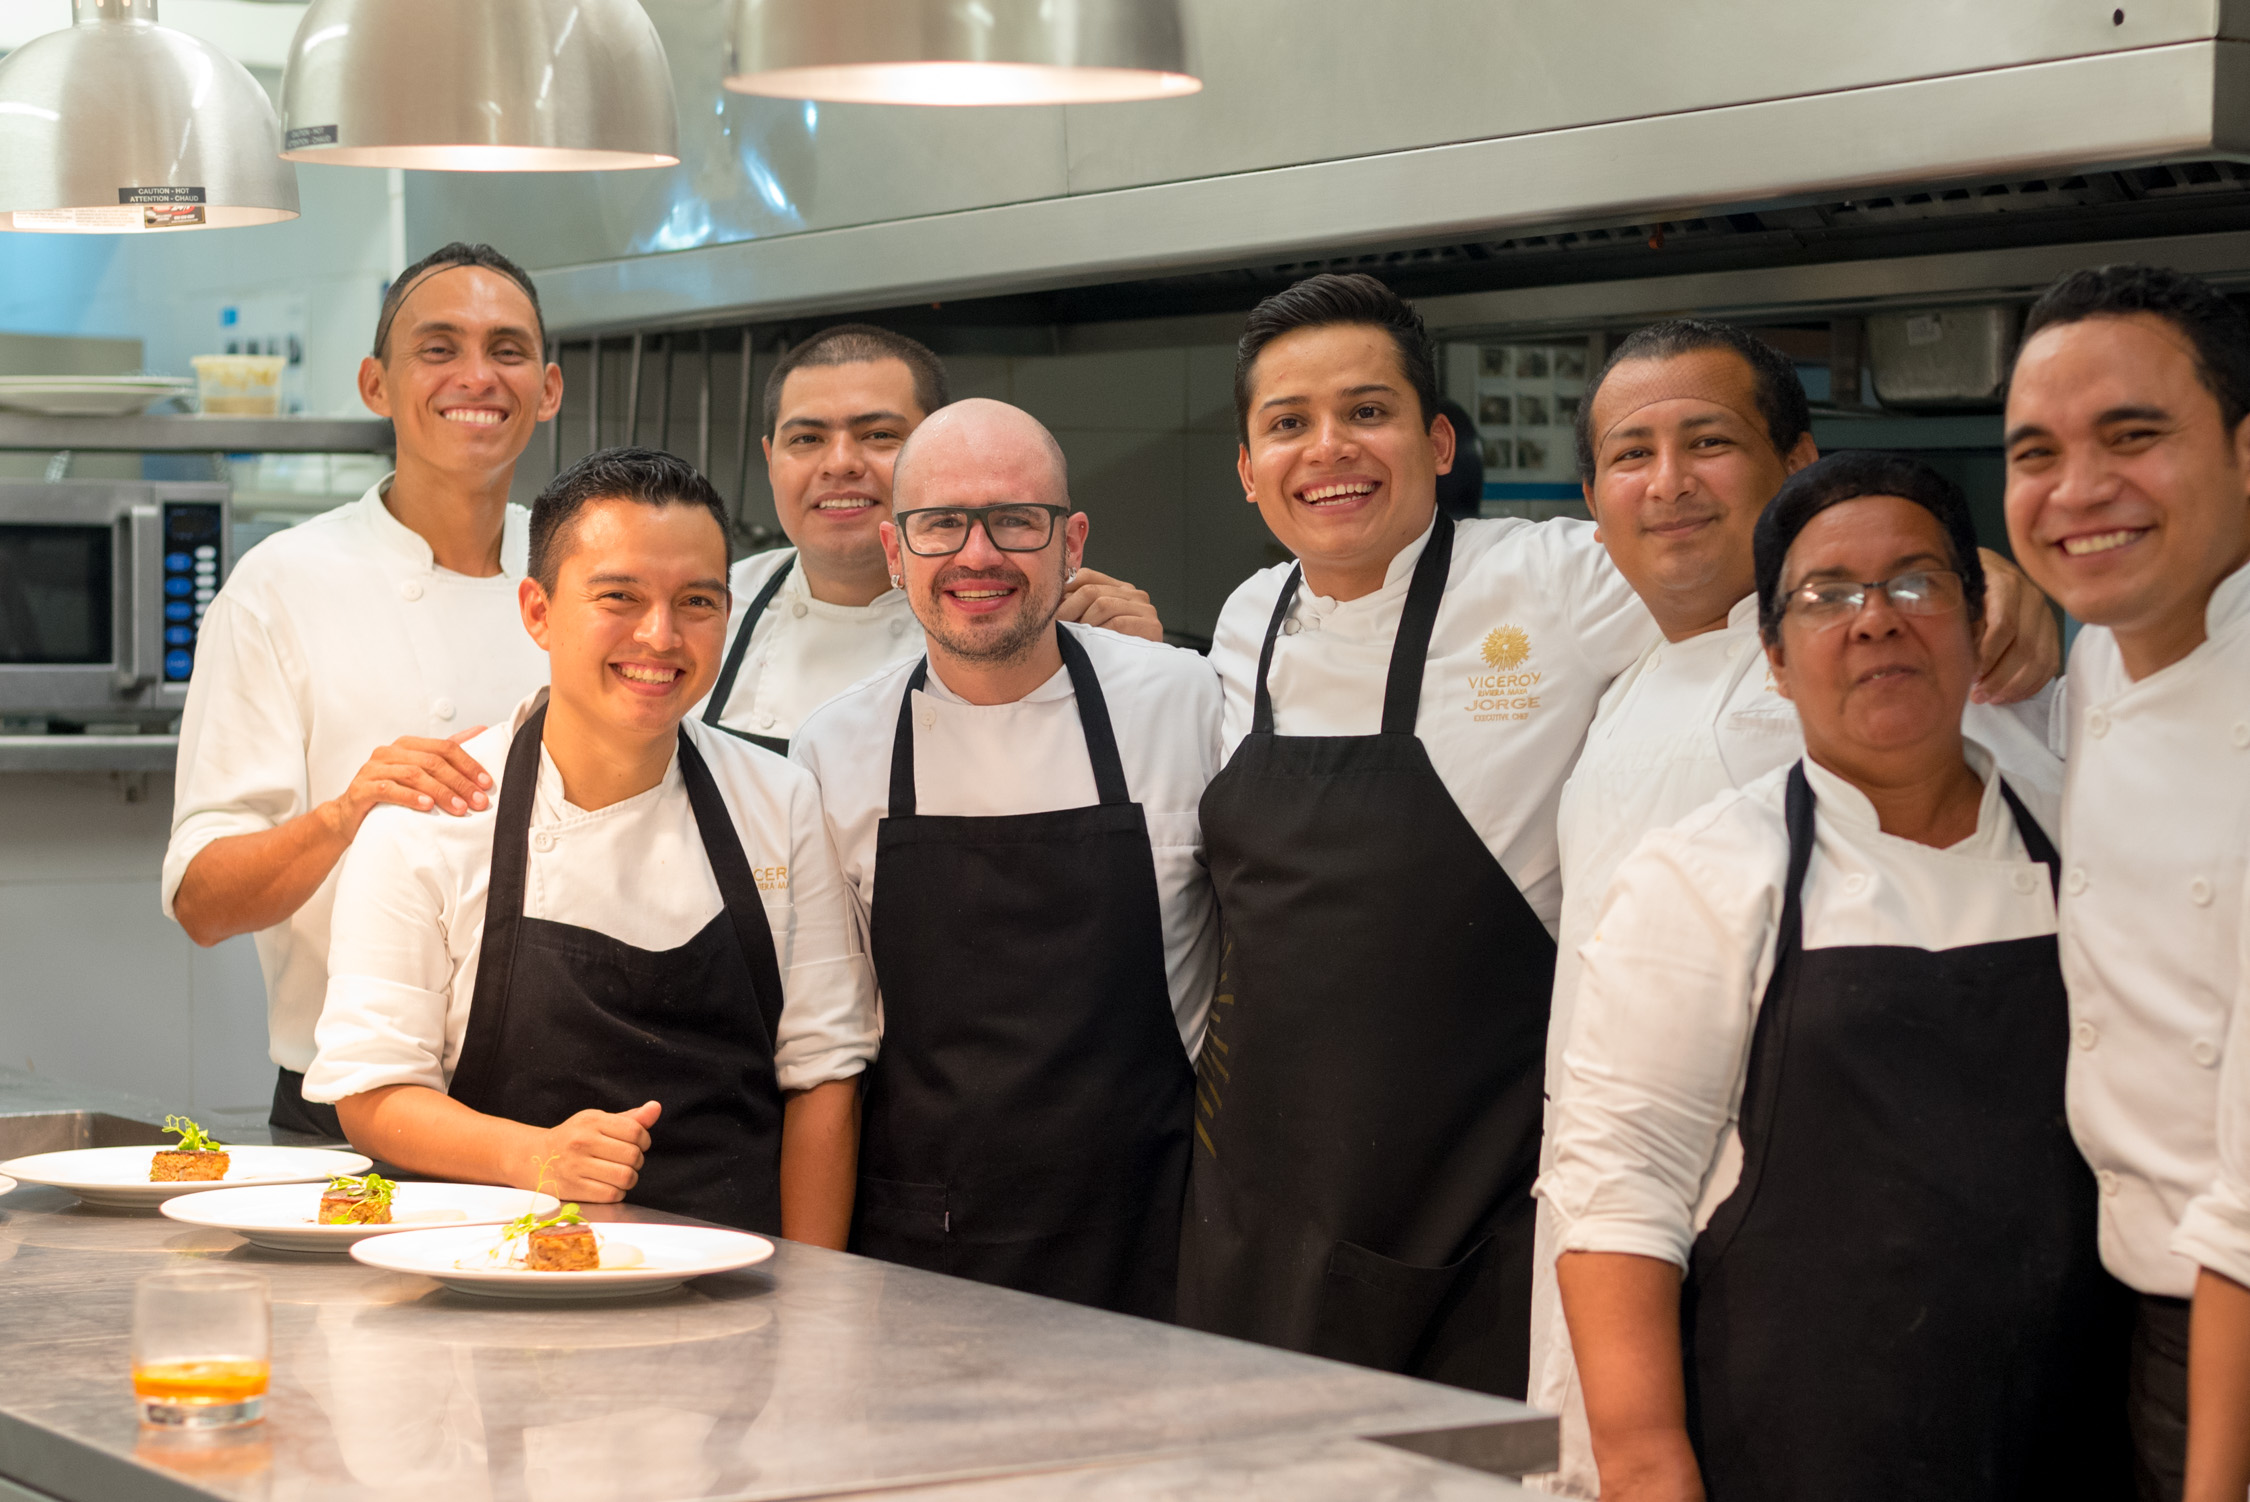 Chef Jorge from the Viceroy and Chef Pablo from Amaranta at La Marea